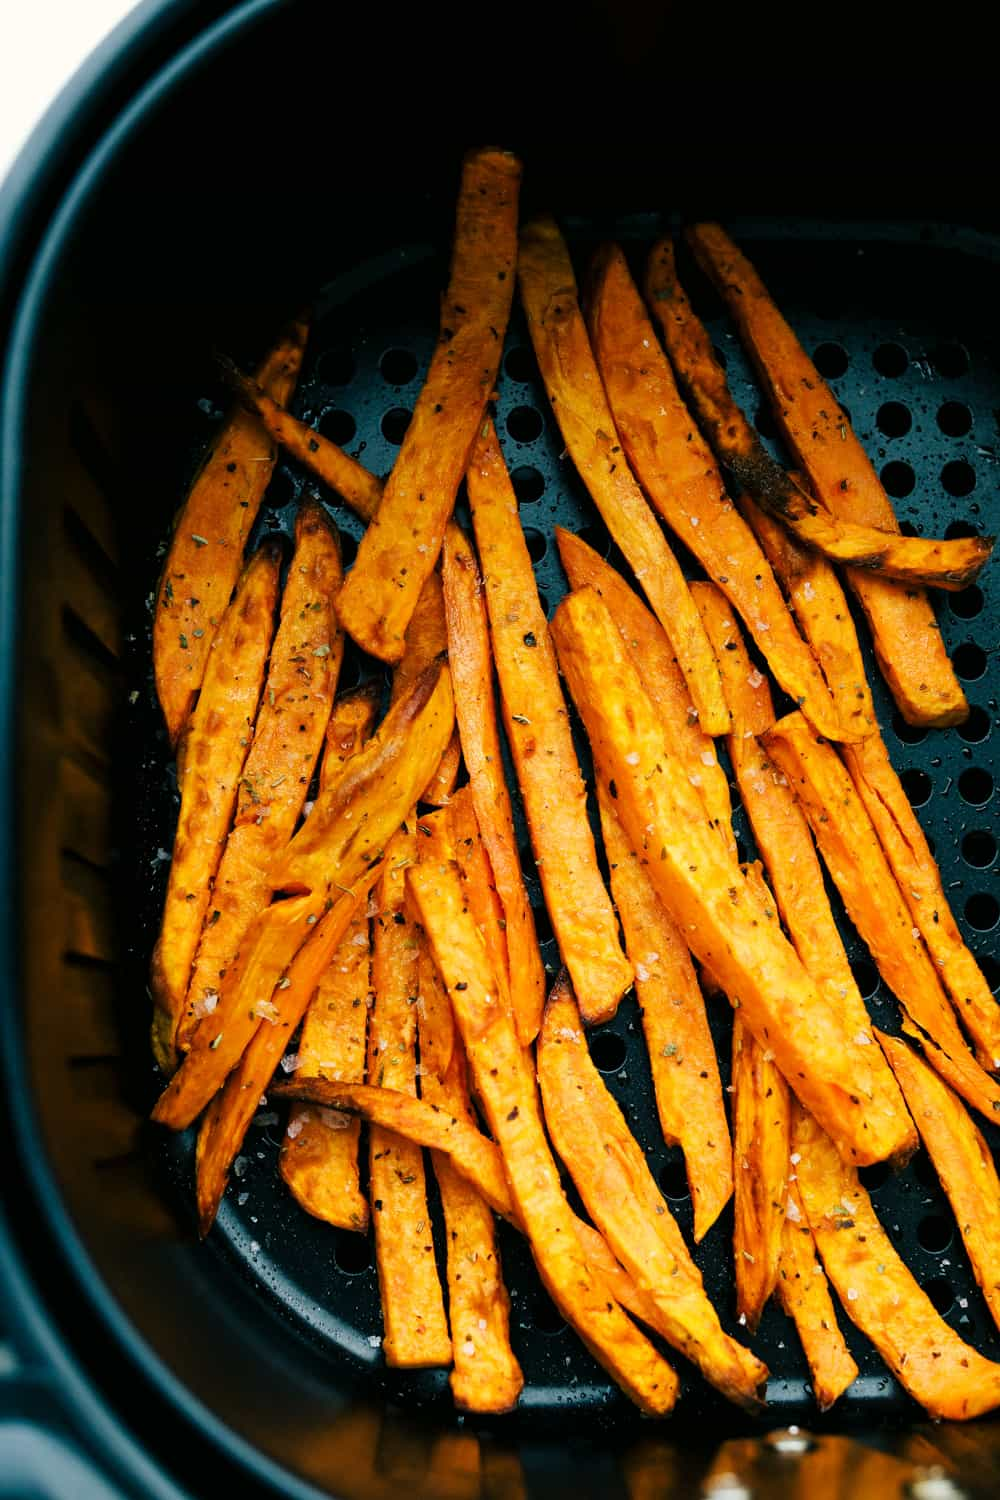 Sweet potato air fryer fries with seasonings.